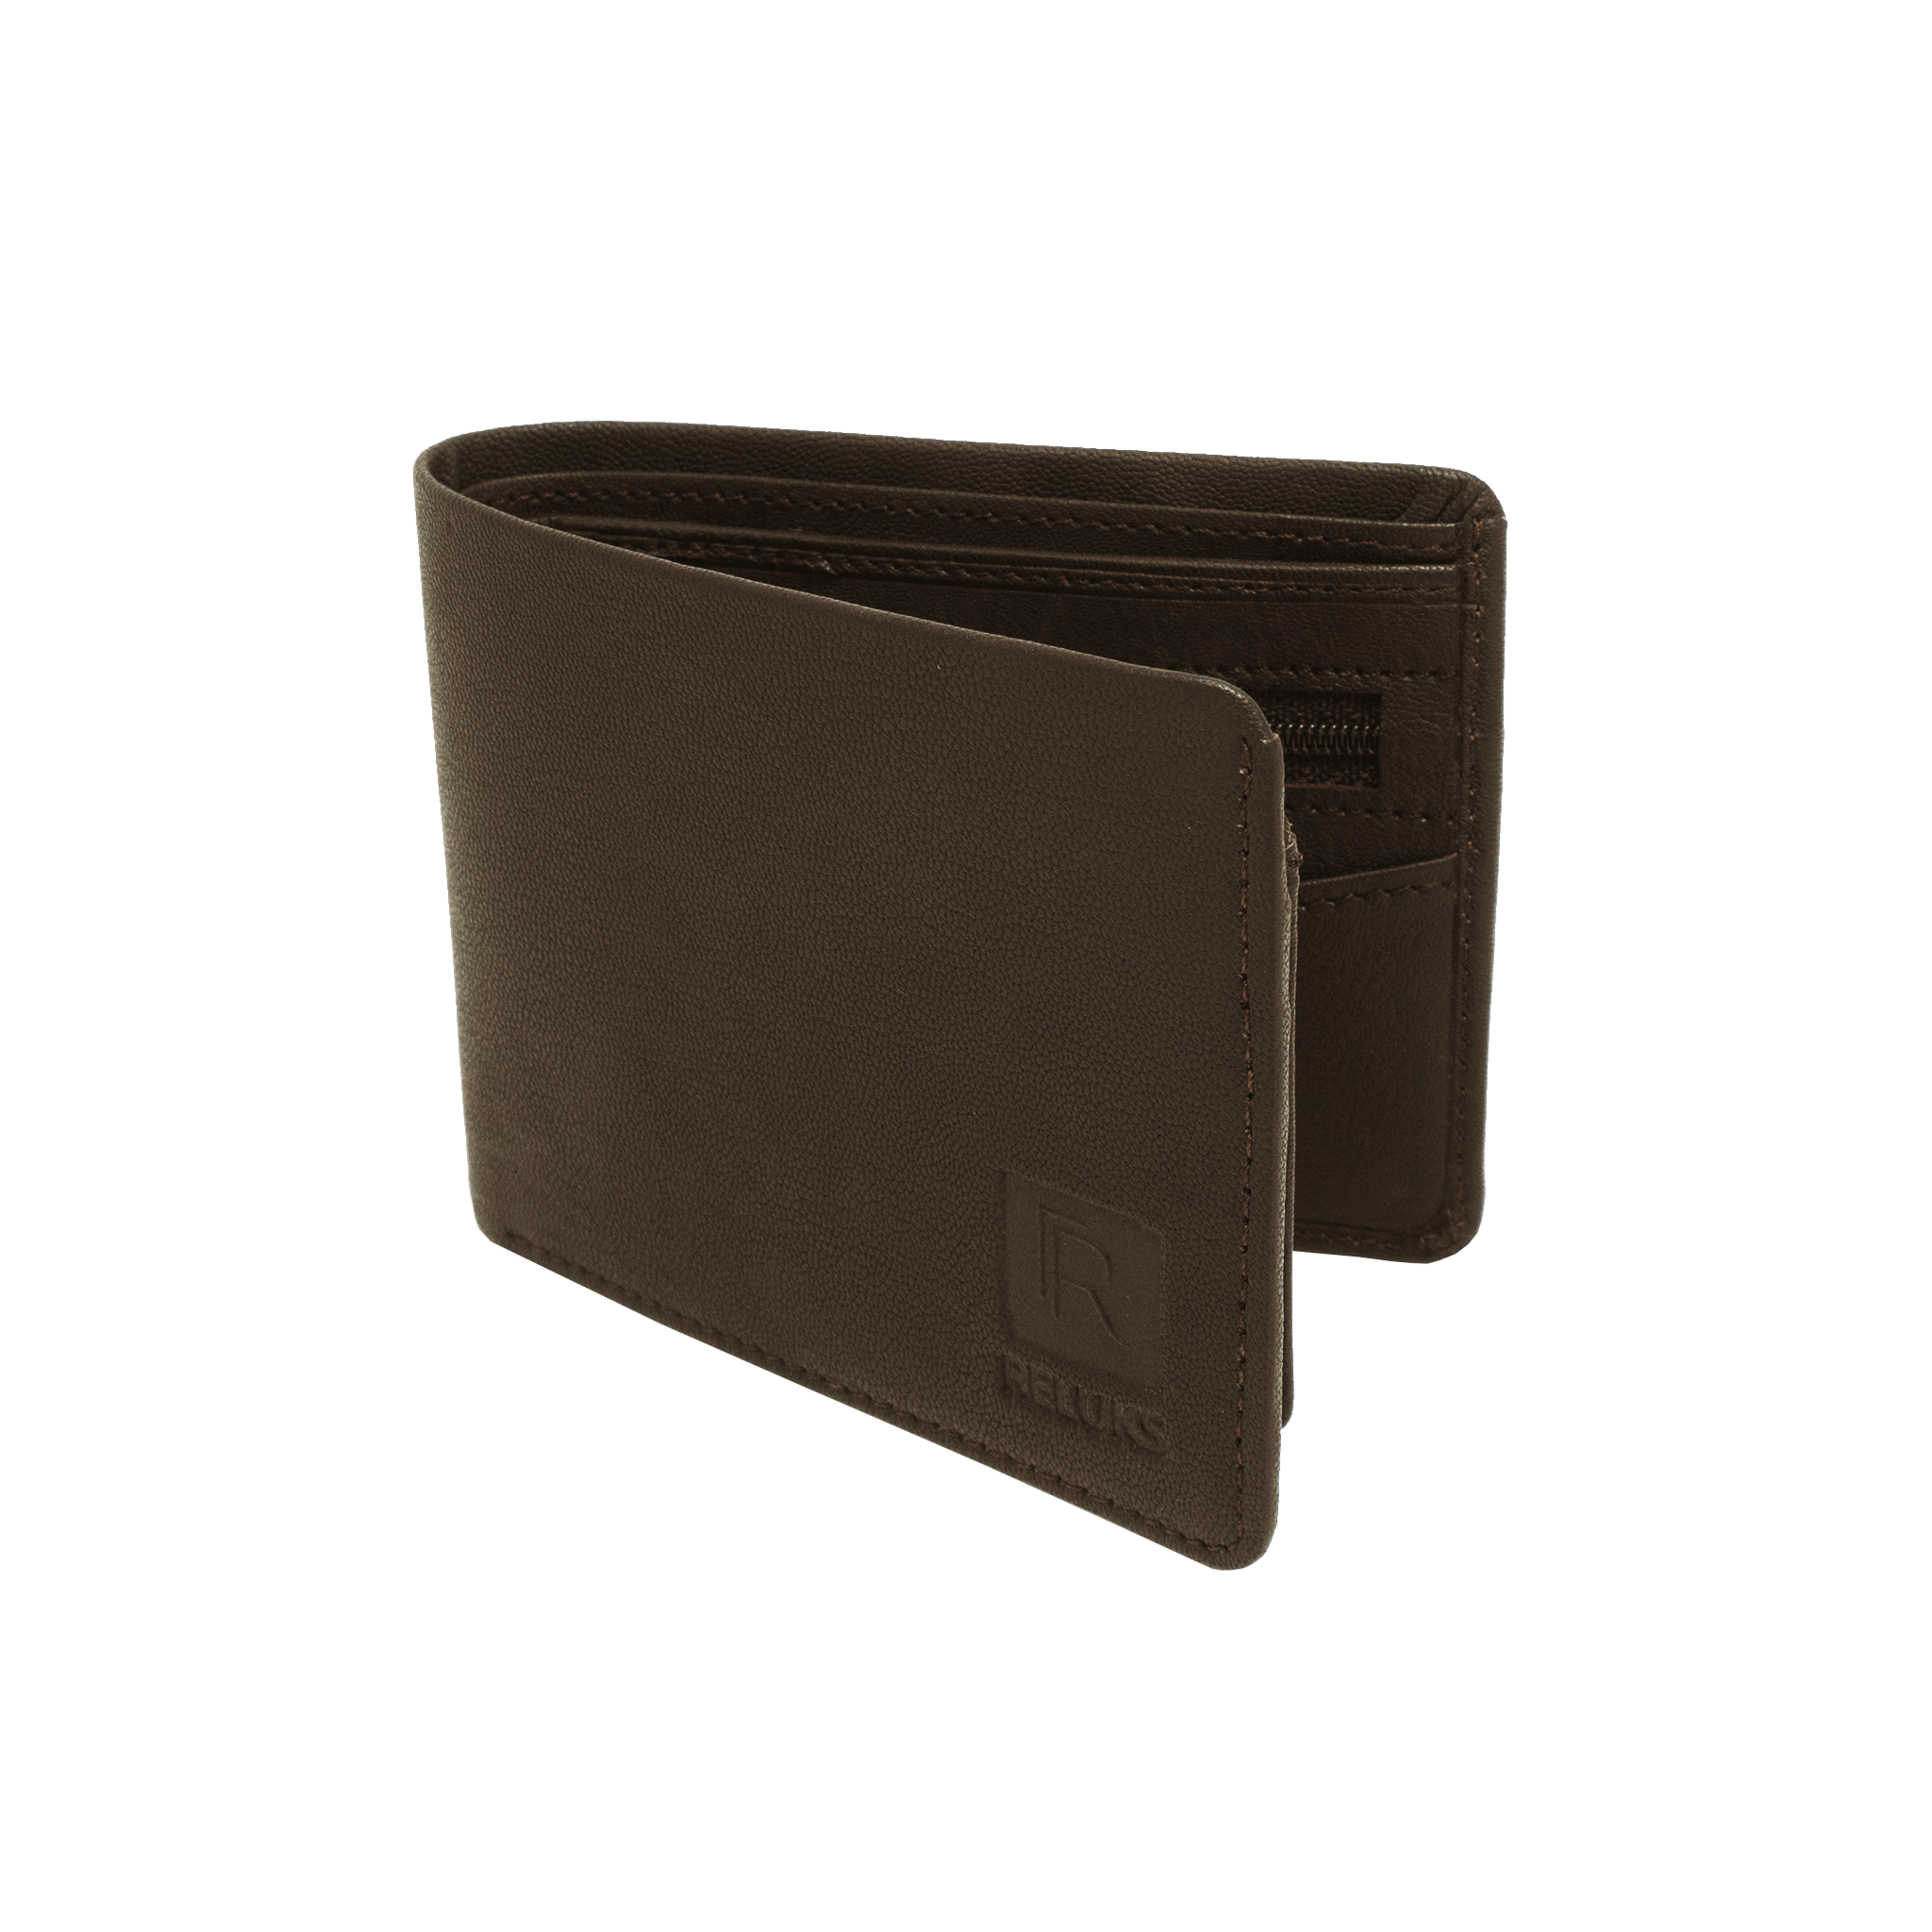 Handcrafted genuine leather brown wallet's fold view by RELUKS